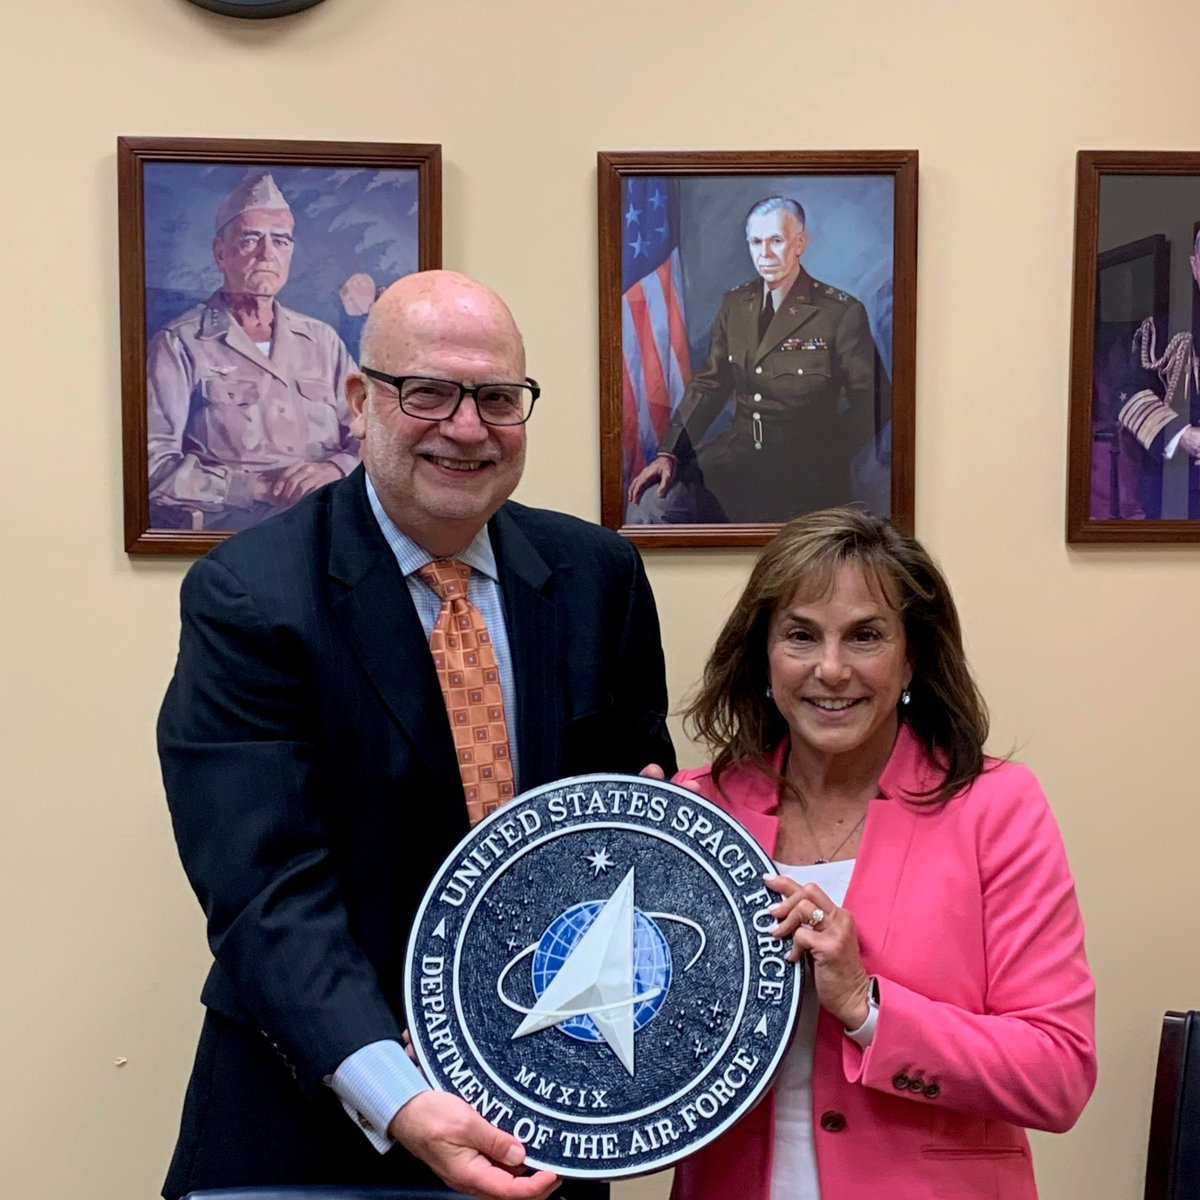 Thank you to @usairforce Acting Secretary John Roth for presenting me with one of the newly minted seals of the United States Space Force.  I'm proud to display this in my office and support the newest branch of our military. https://t.co/trkTmoRXup